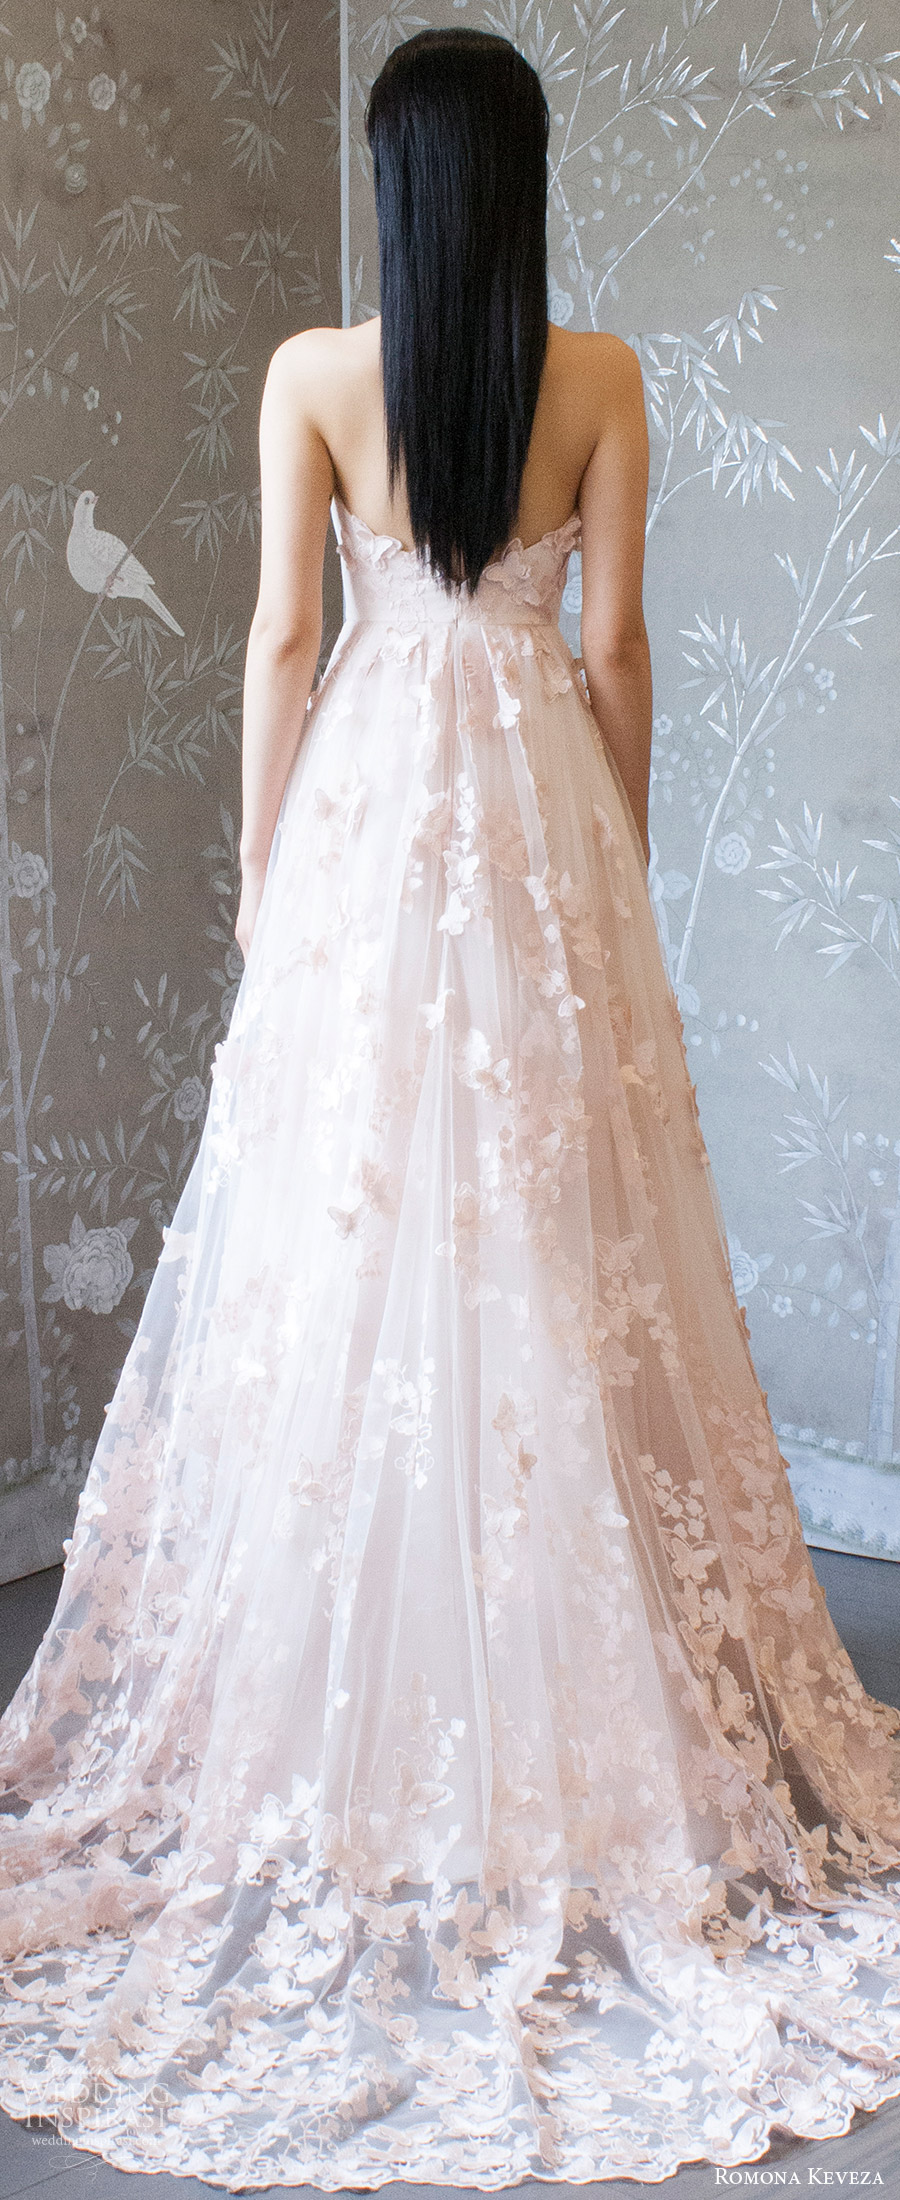 romona keveza spring 2018 bridal sleeveless halter deep v neck embellished lace a line wedding dress (rk8405) zbv blush color romantic train